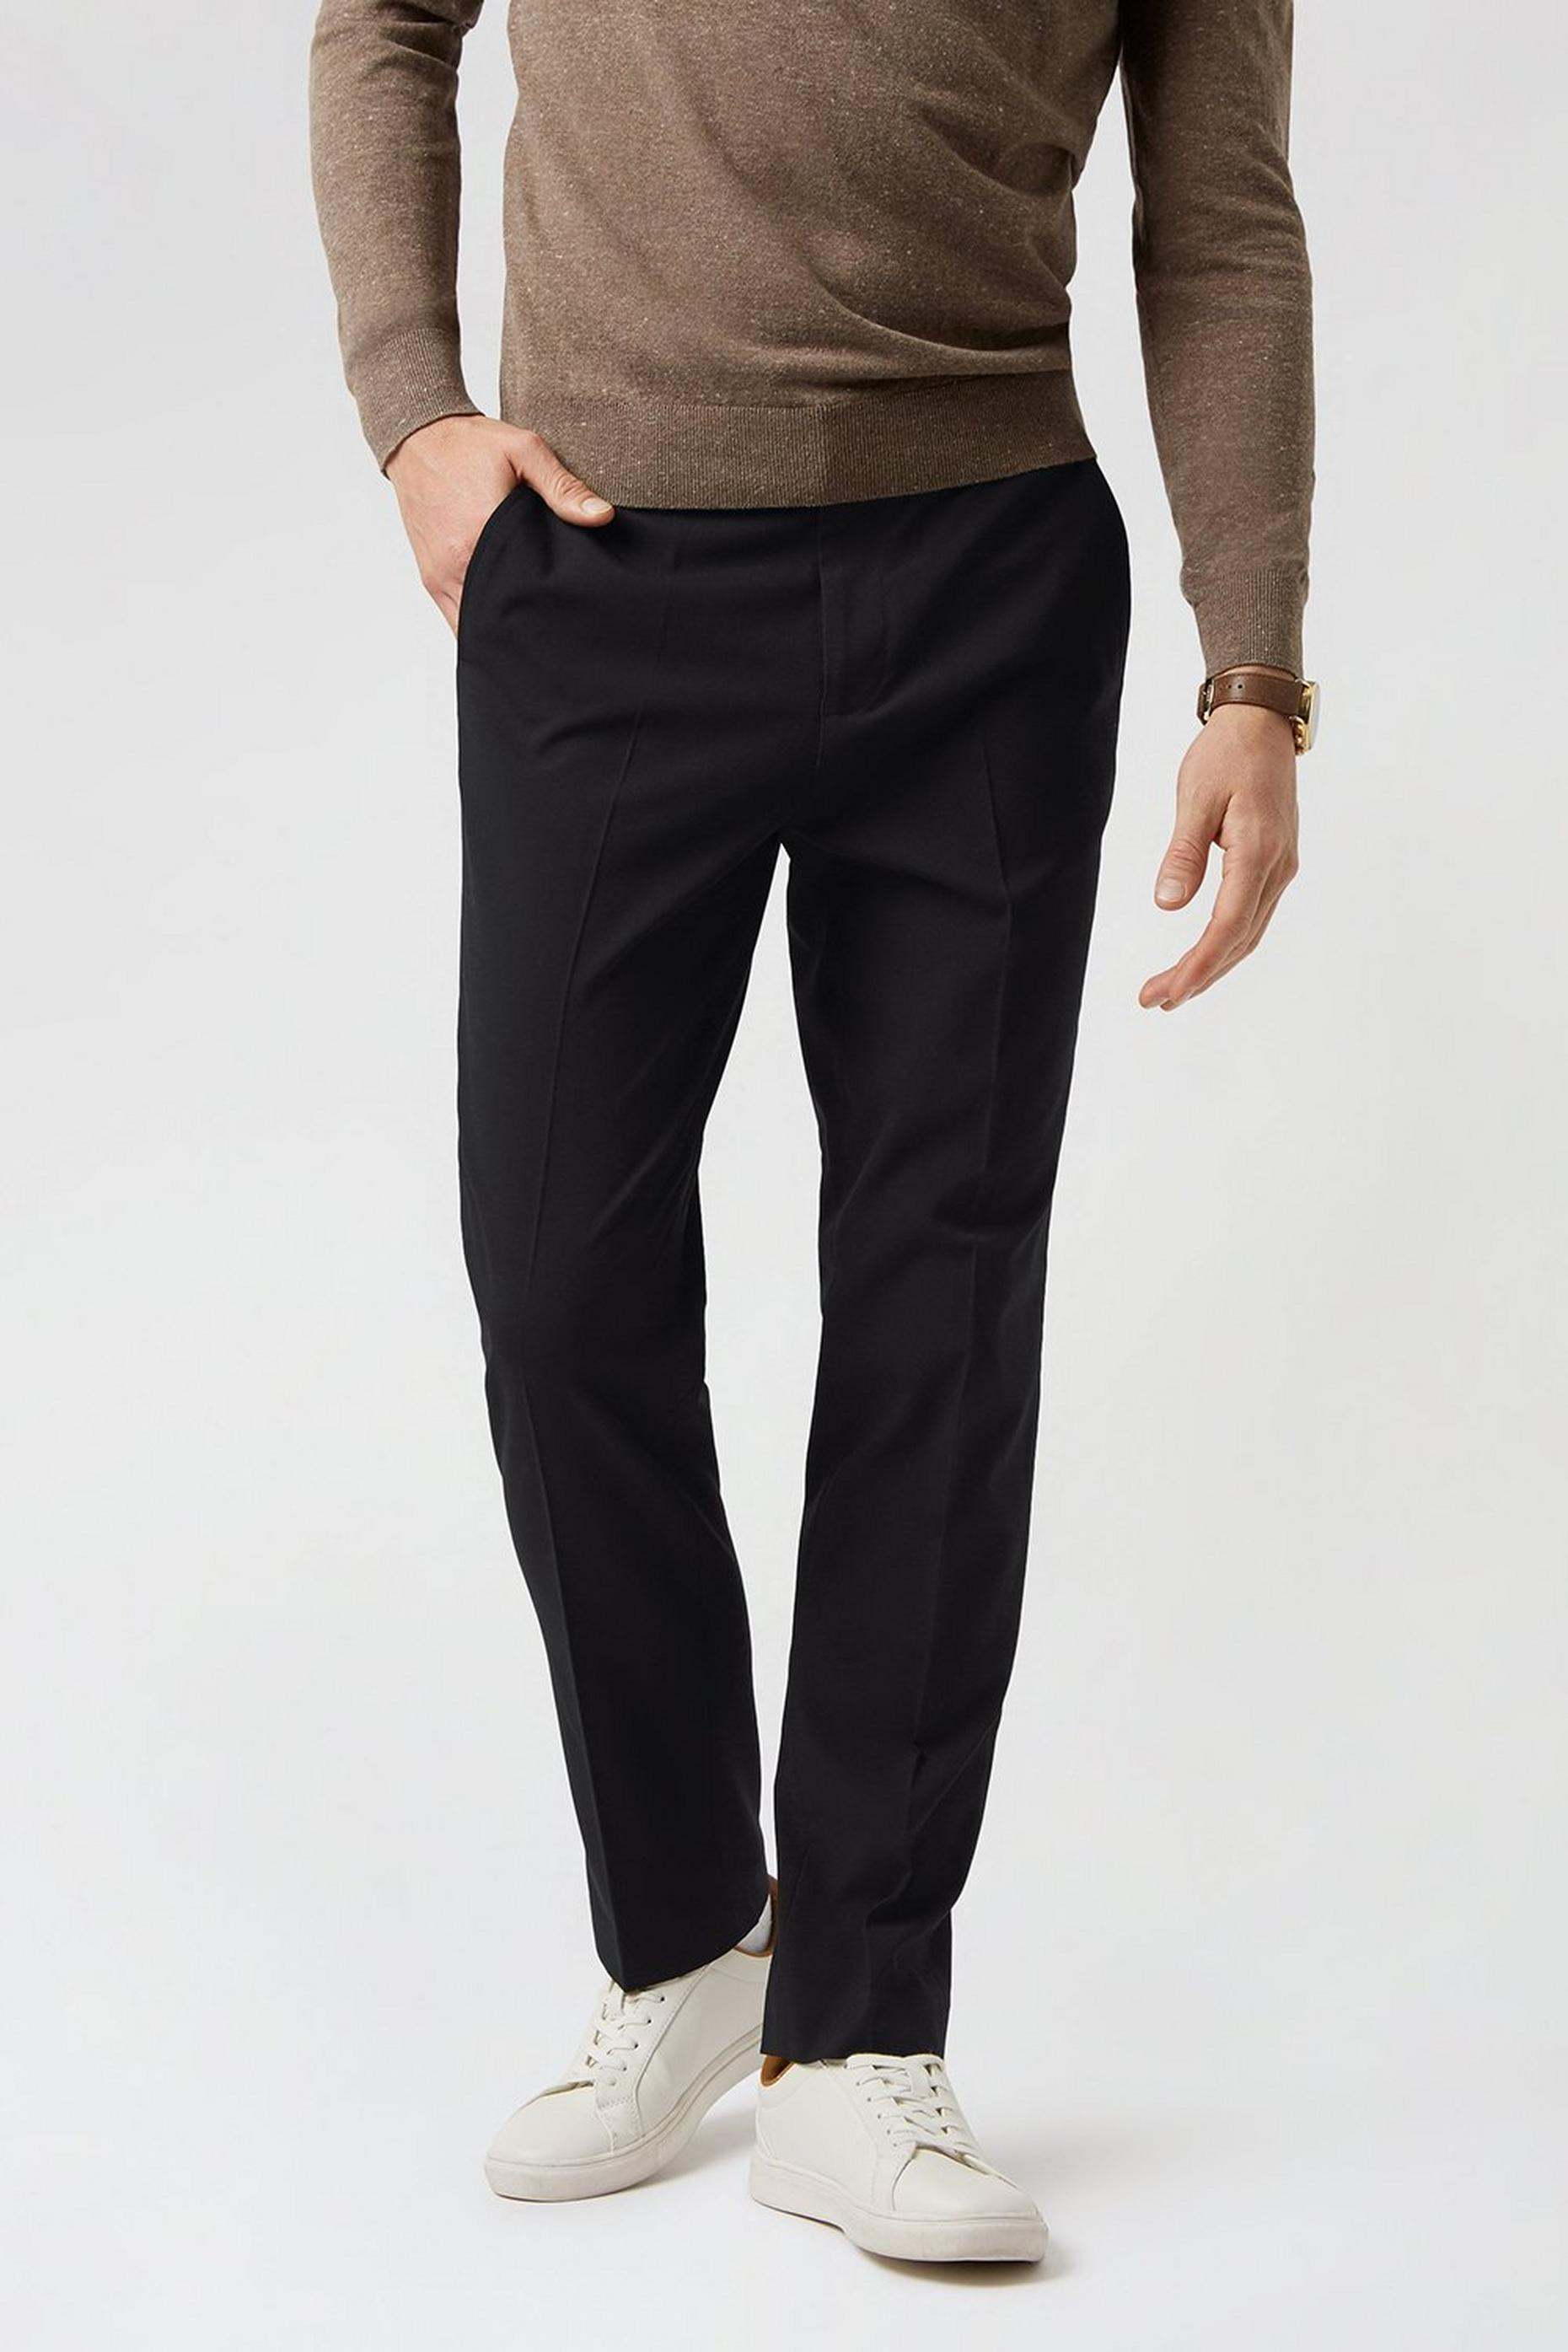 Black Essential Eco Slim Fit Suit Trousers